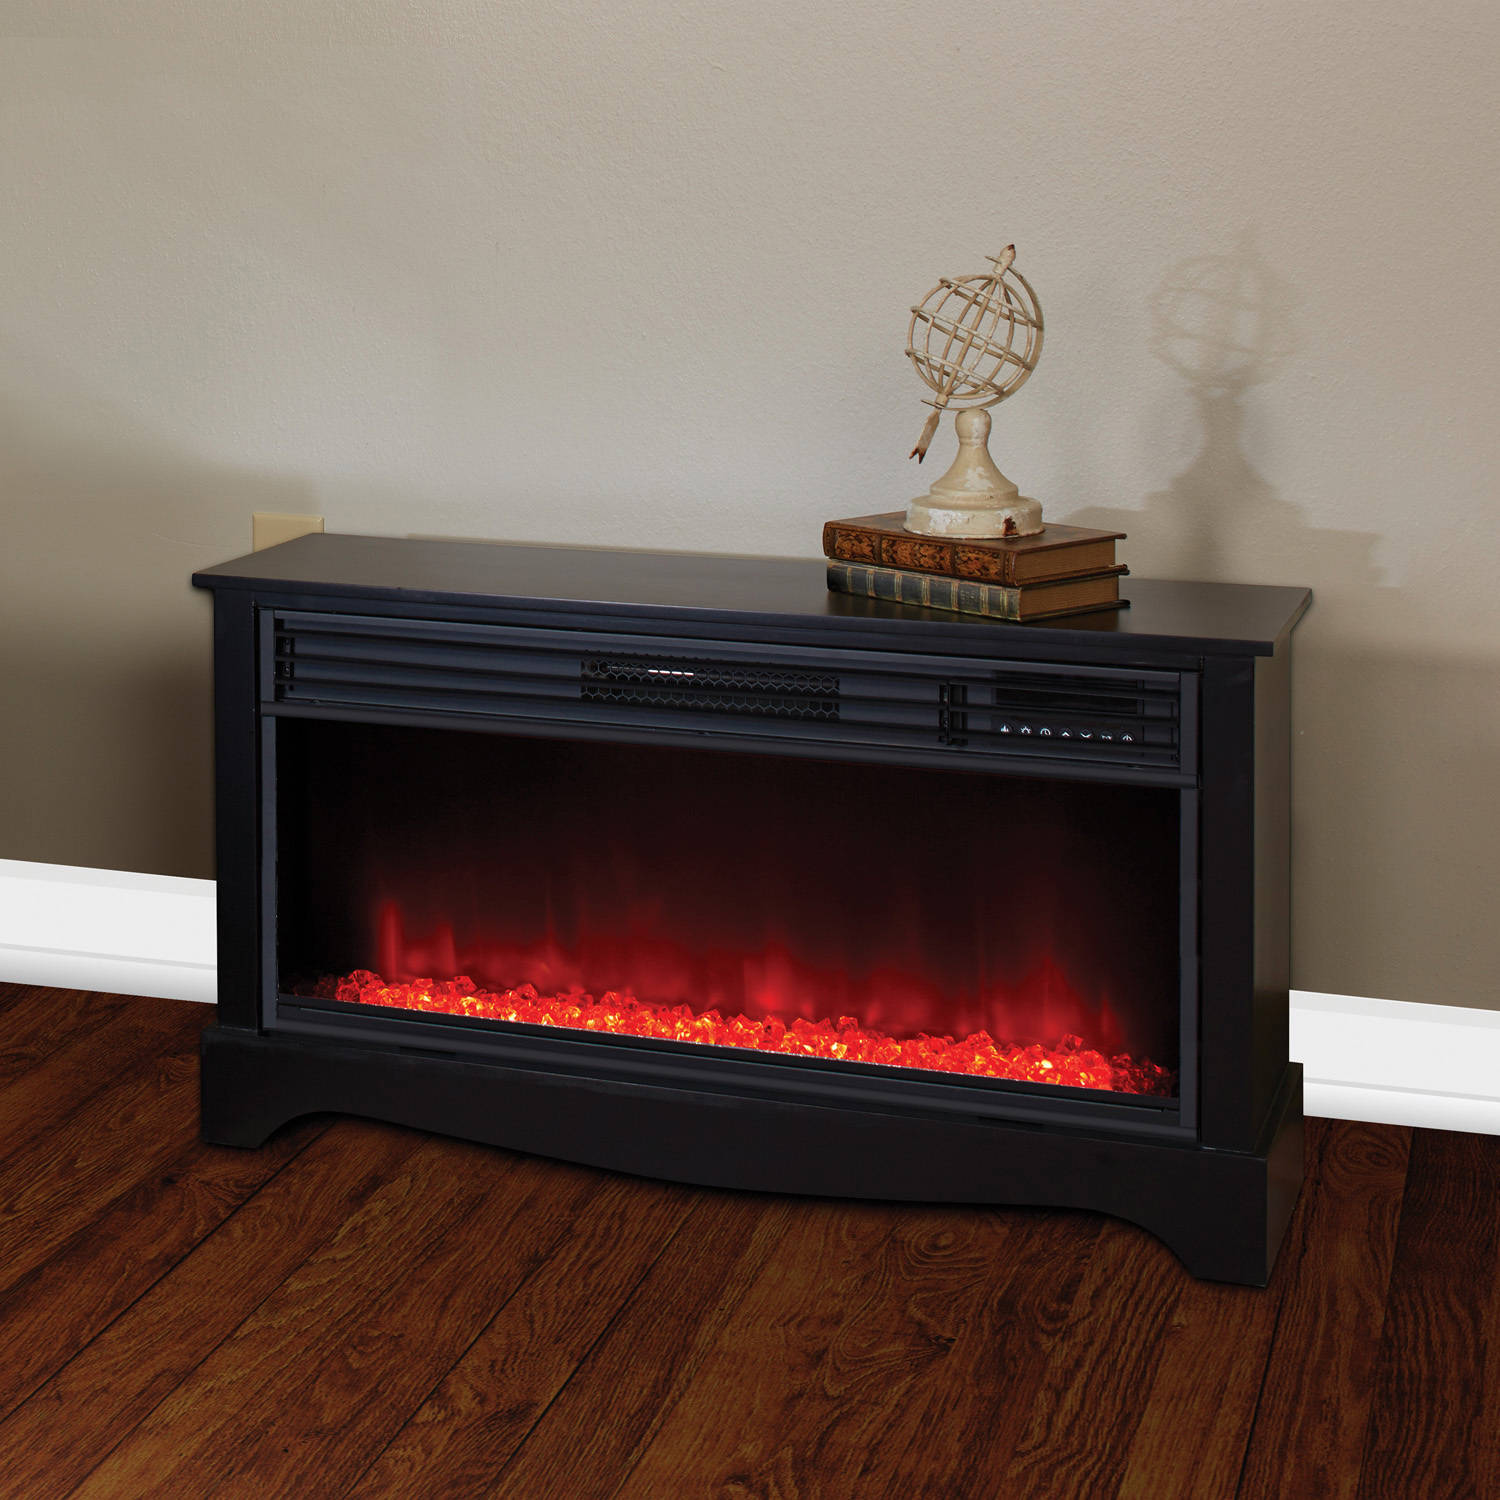 Lifezone Electric Infrared Media Fireplace Heater 4914cf08d5b4